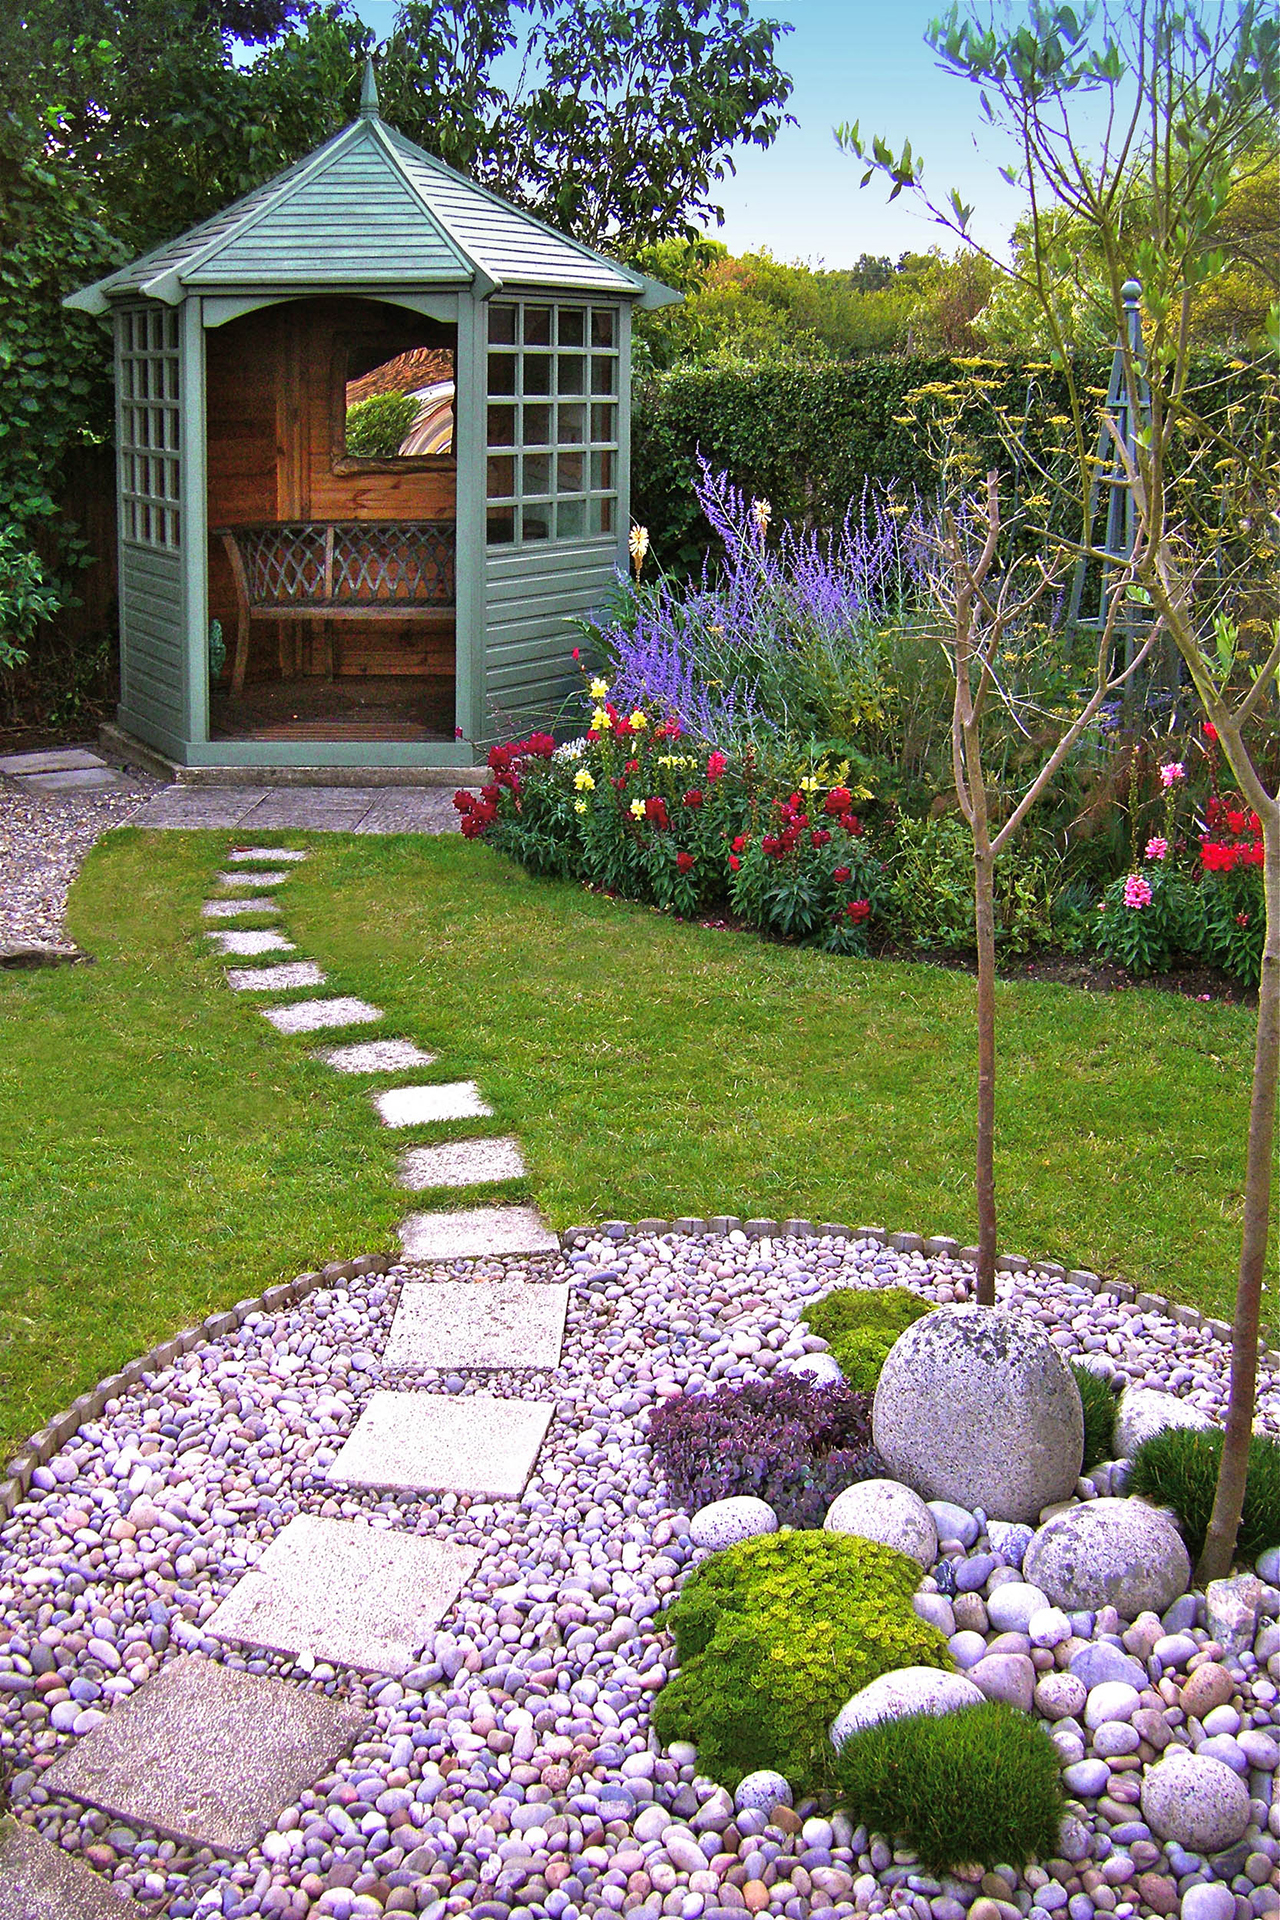 50 Best Backyard Landscaping Ideas and Designs in 2016 on Best Backyard Designs id=90260